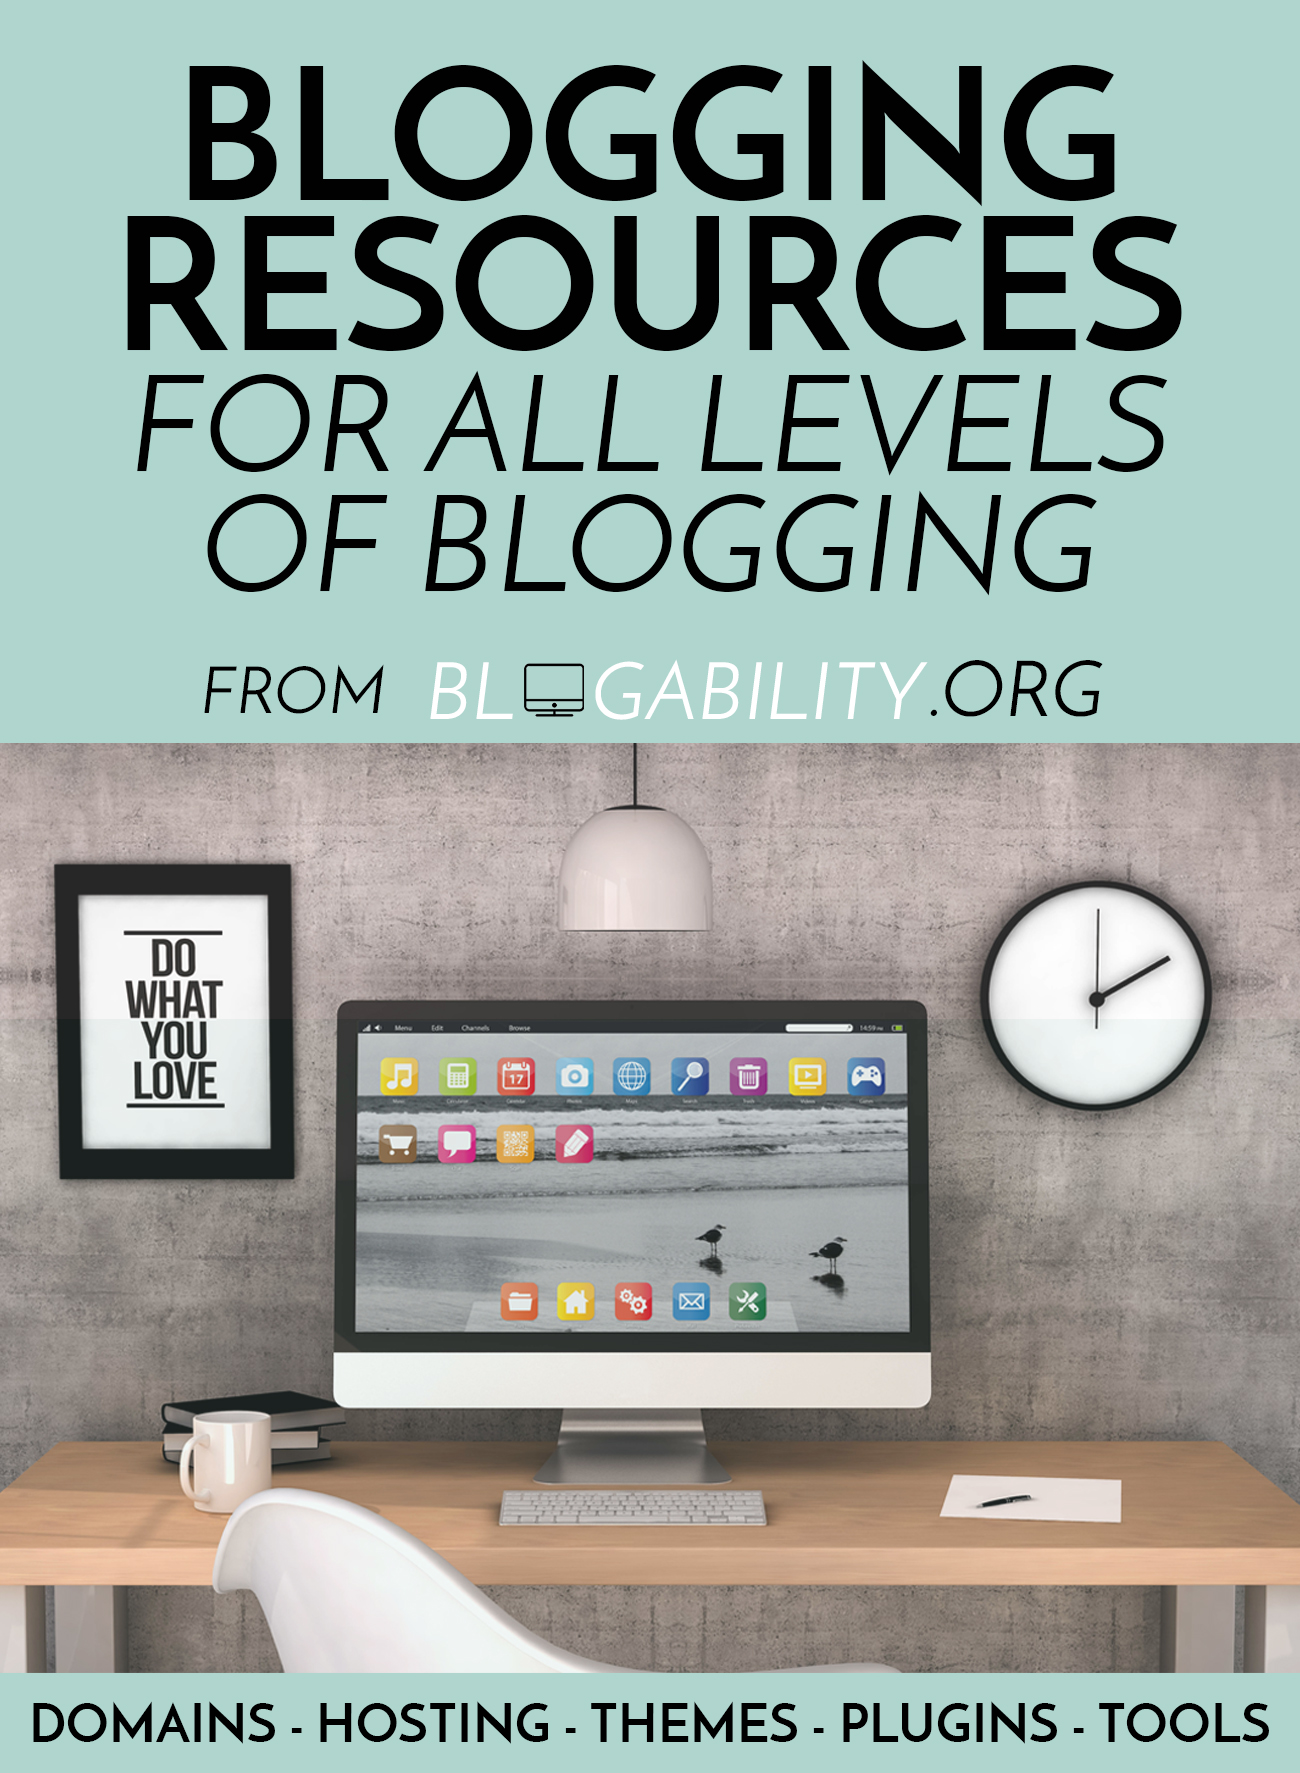 Blogging Resources - come learn about the best blogging resources out there for all levels of blogging! From www.blogability.org